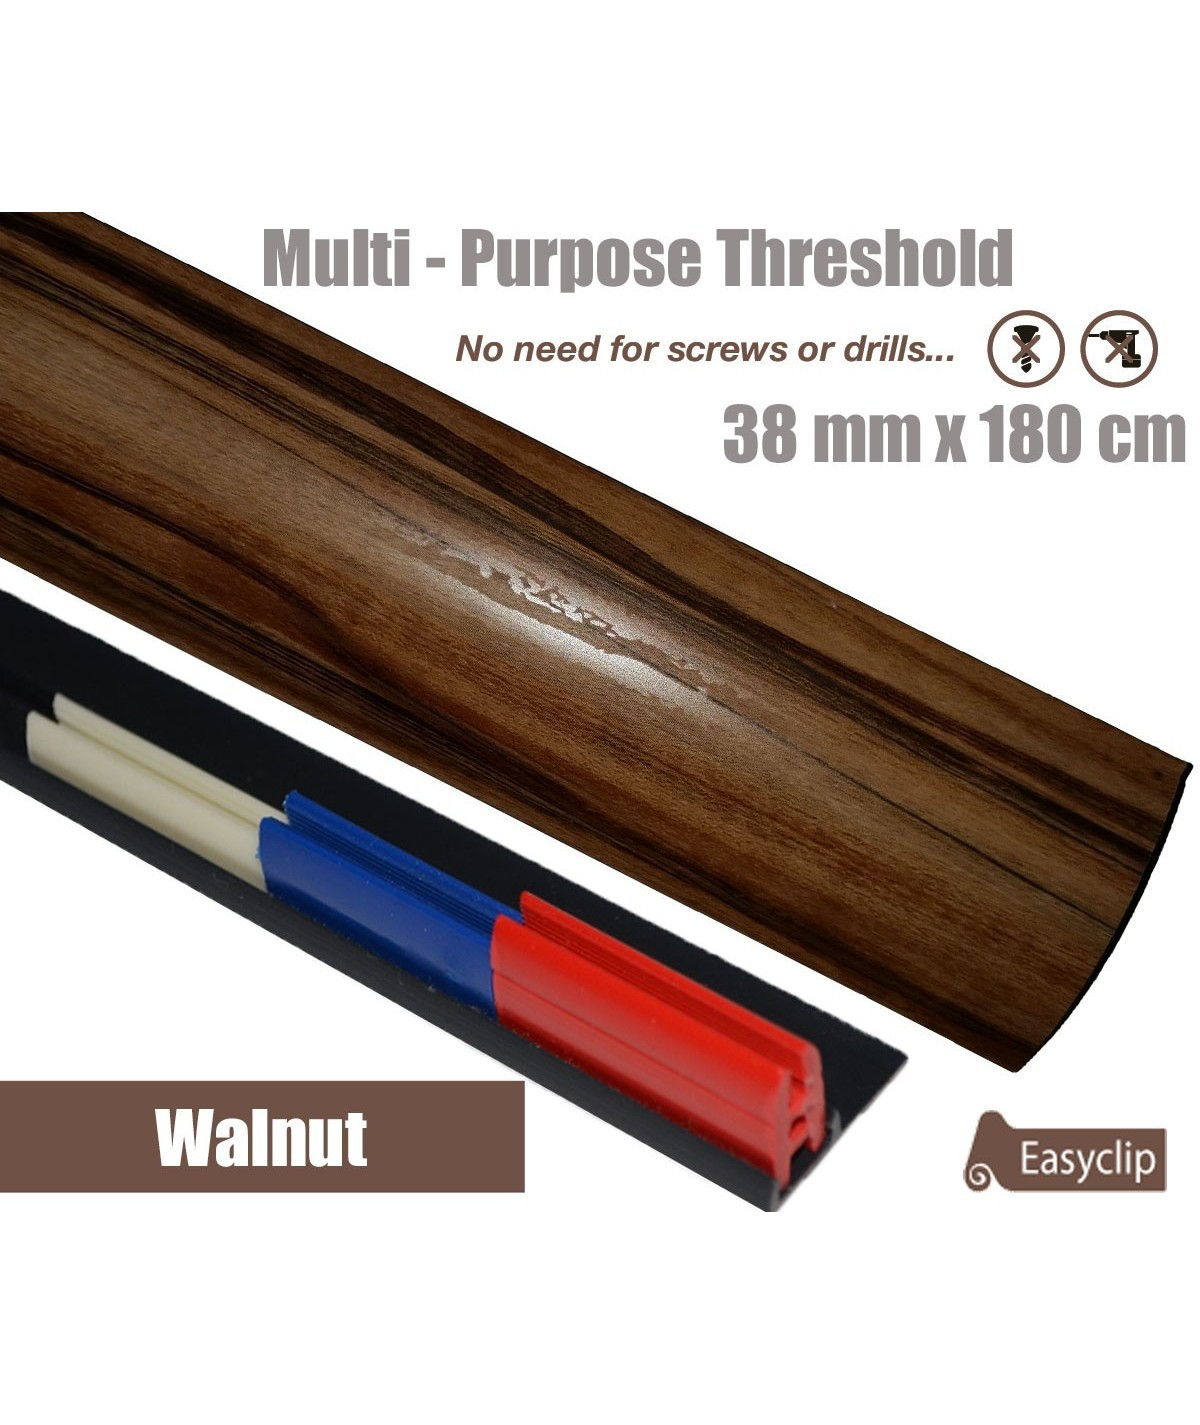 Walnut Threshold Strip 38mm x 180cm laminate multi Purpose Adhesive Clip System